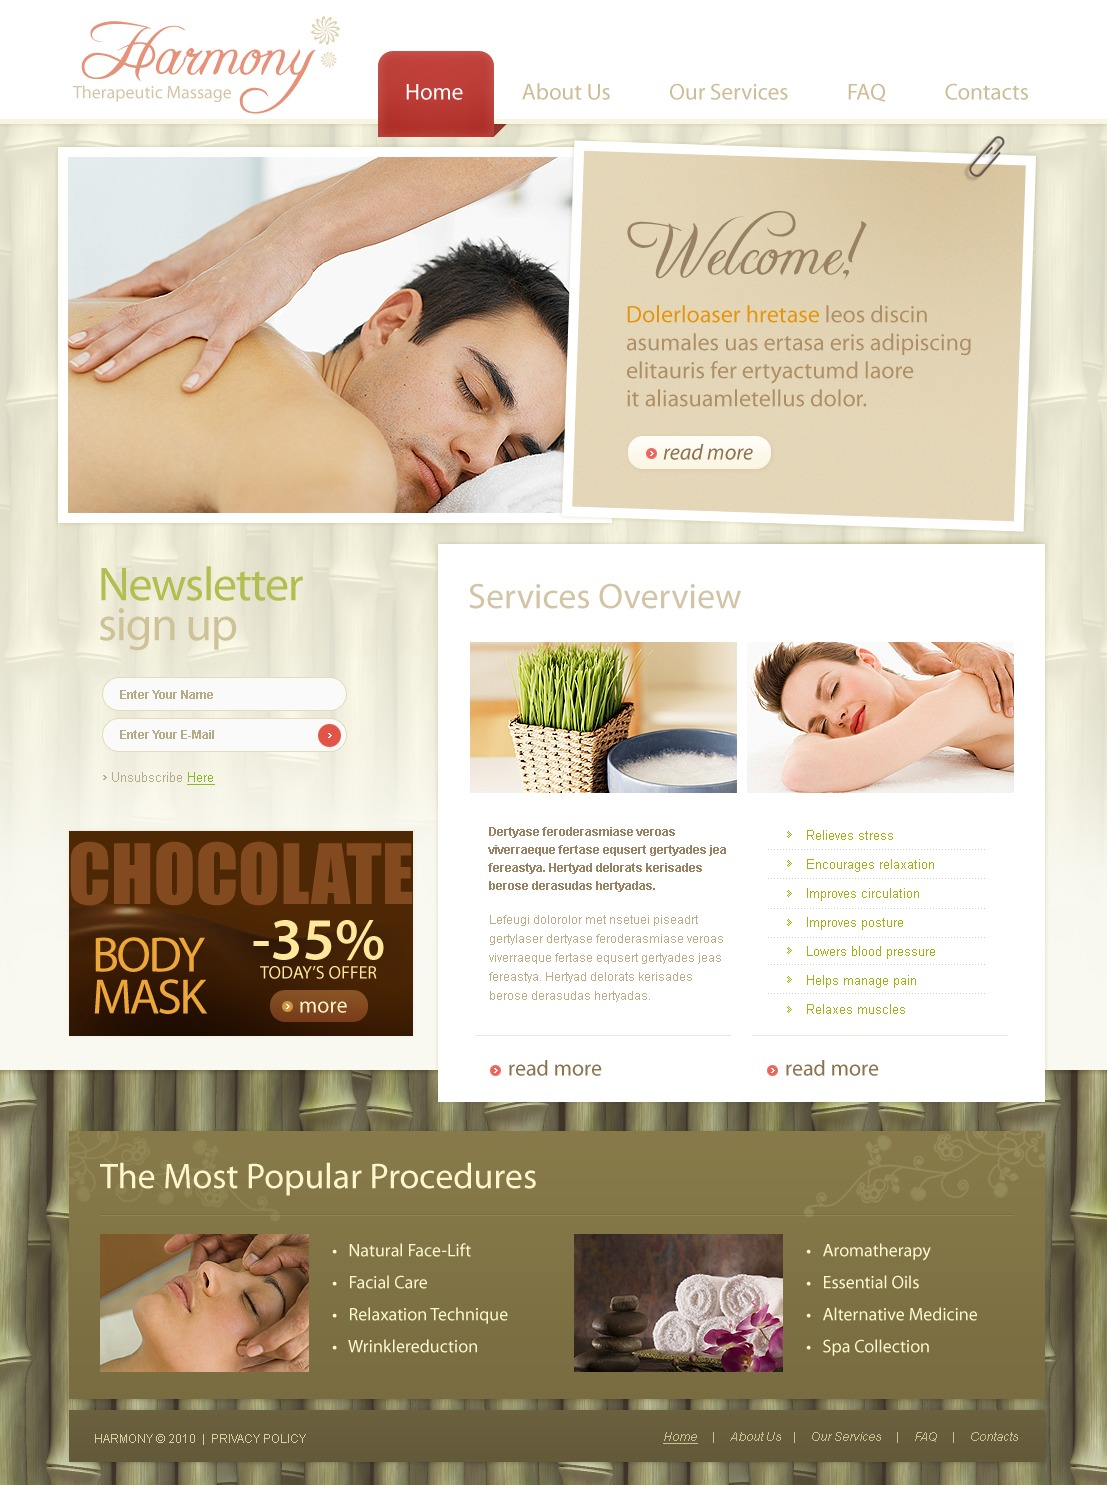 The Harmony Therapeutic PSD Design 54360, one of the best PSD templates of its kind (beauty, most popular, flash 8, wide), also known as harmony therapeutic PSD template, massage PSD template, shiatsu PSD template, therapy PSD template, masseur PSD template, body PSD template, back PSD template, neck PSD template, shoulder PSD template, pain PSD template, injury PSD template, relaxation PSD template, therapeutic PSD template, benefits PSD template, staff PSD template, price PSD template, class PSD template, find PSD template, side PSD template, effects PSD template, mind PSD template, spirit PSD template, nationally PSD template, certified PSD template, risks PSD template, services PSD template, help PSD template, professionalism PSD template, payment PSD template, way PSD template, case PSD template, difficult PSD template, fas and related with harmony therapeutic, massage, shiatsu, therapy, masseur, body, back, neck, shoulder, pain, injury, relaxation, therapeutic, benefits, staff, price, class, find, side, effects, mind, spirit, nationally, certified, risks, services, help, professionalism, payment, way, case, difficult, fas, etc.